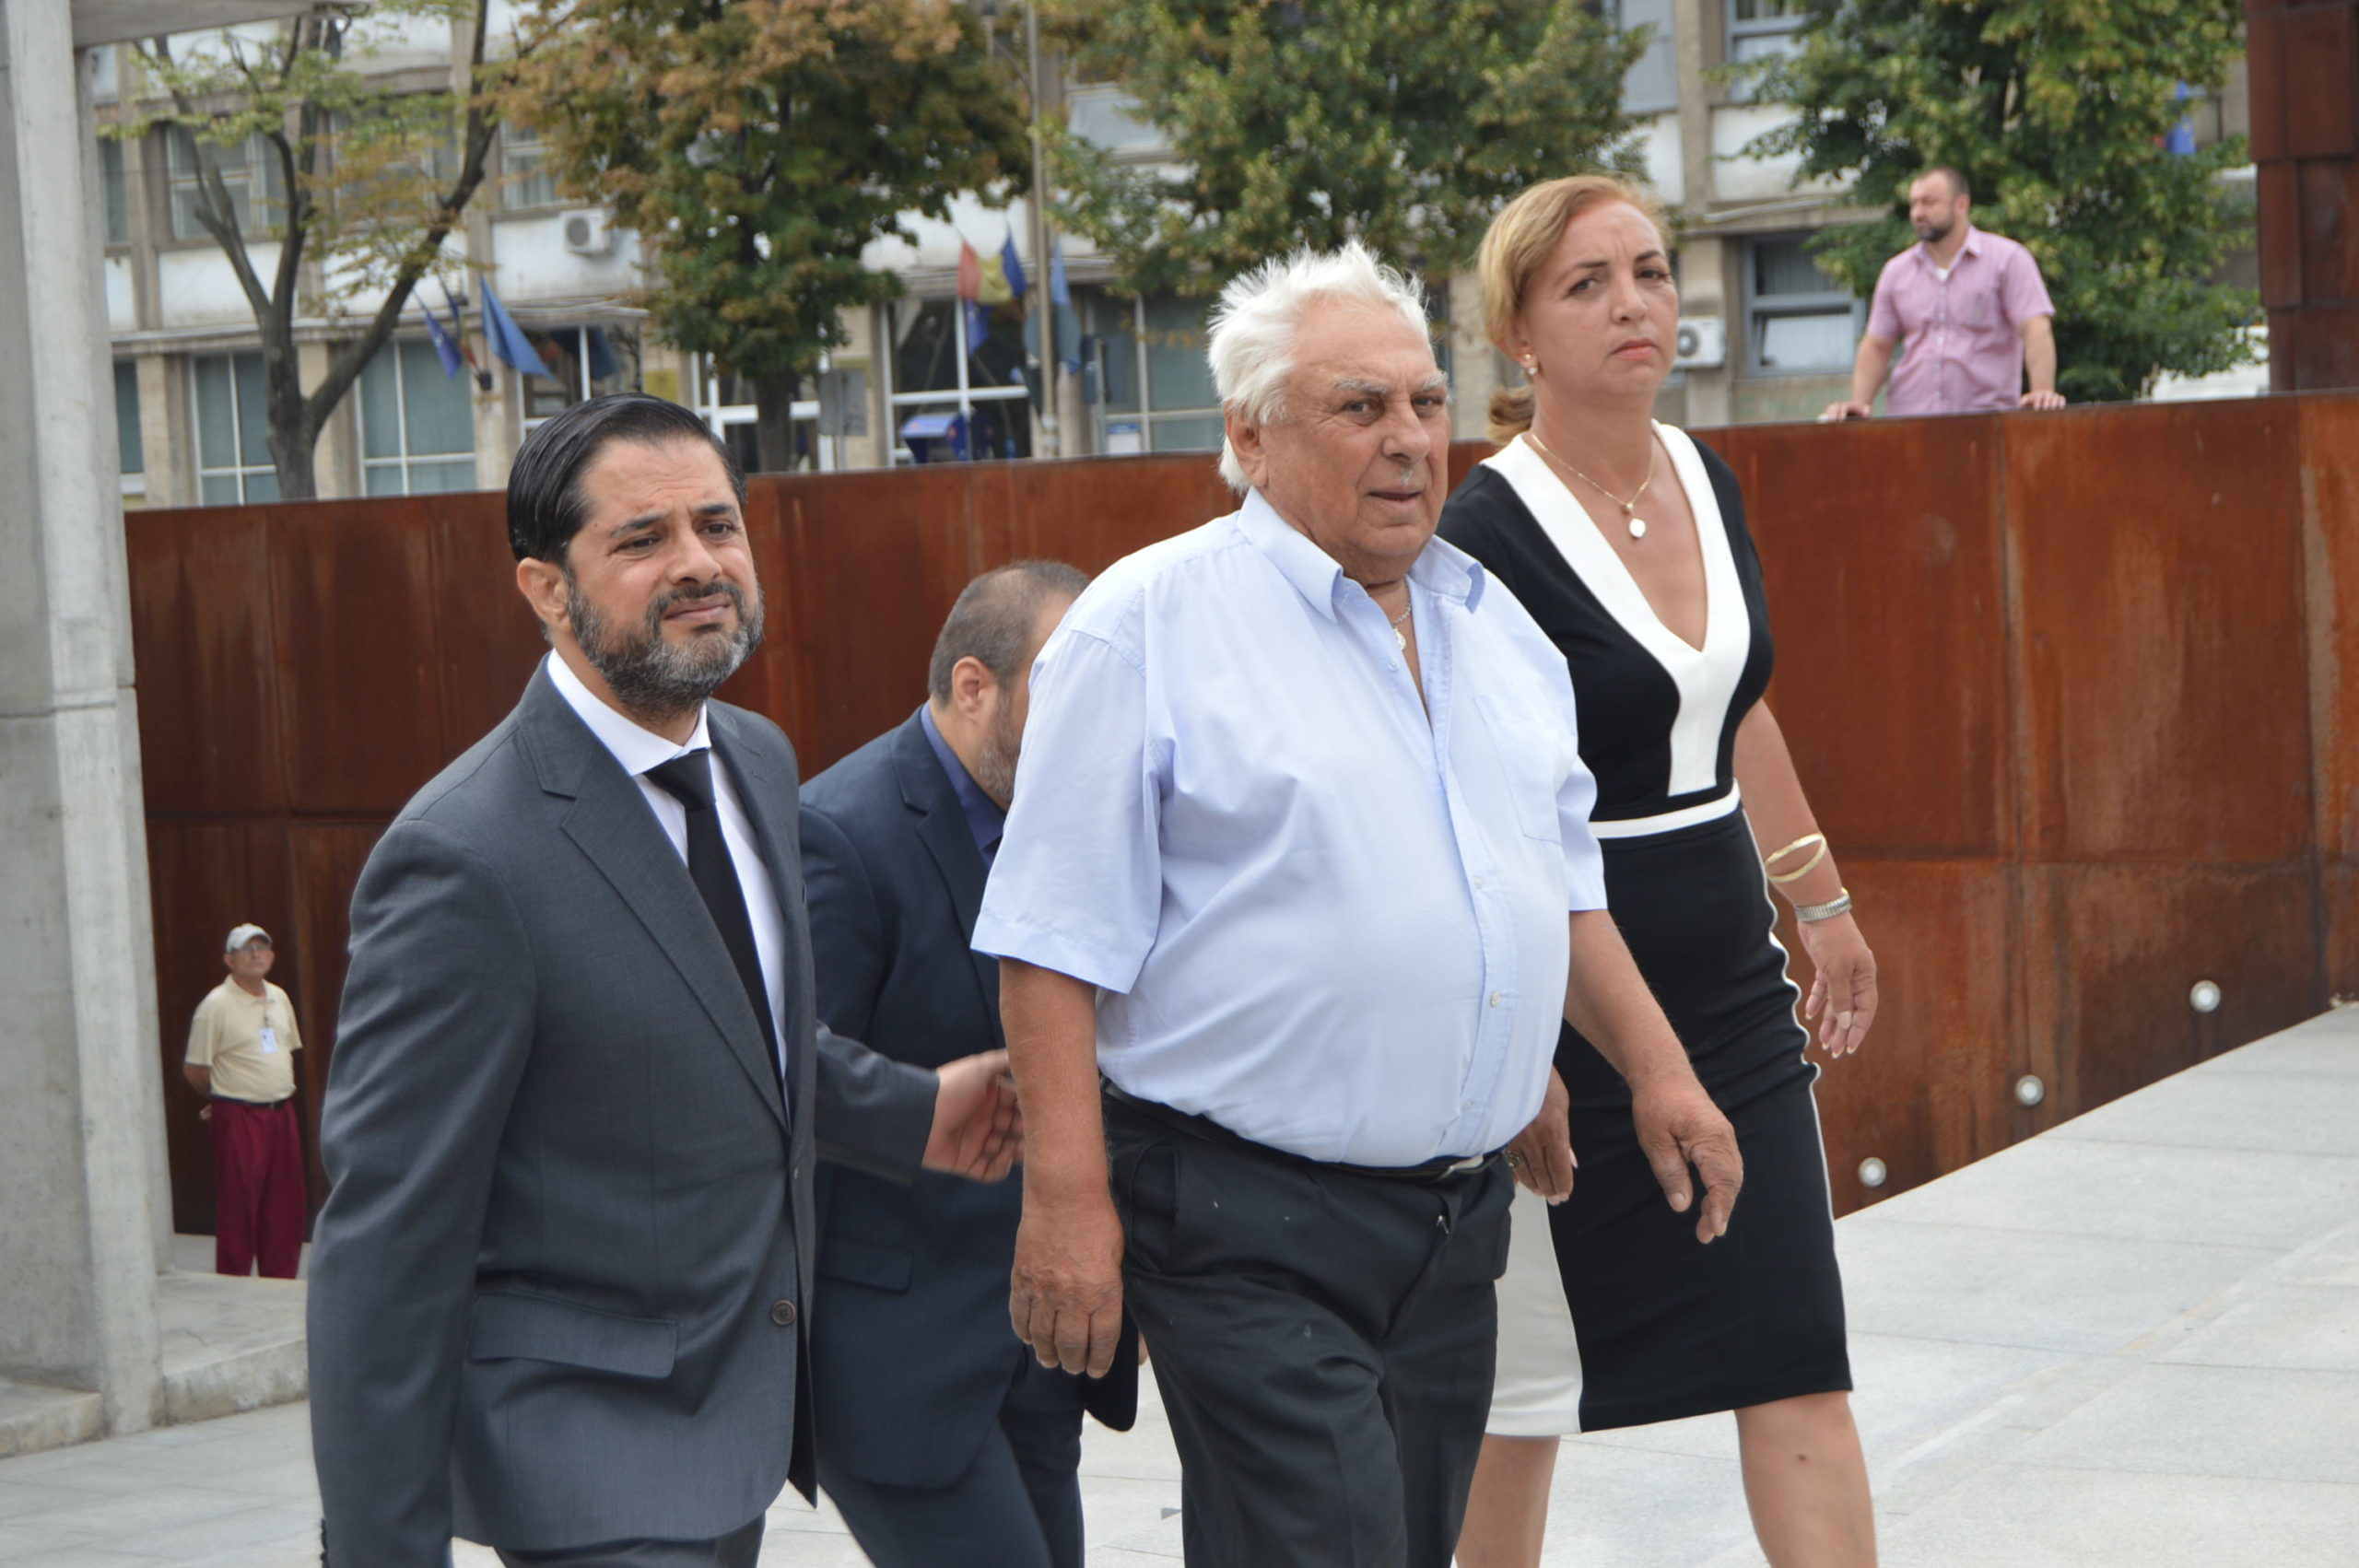 Remembrance event in Bucharest on 2 August 2016; Daniel Vasile (former Member of Parliament), Constantin Braila (Roma survivor), Rozalia-Dana Varga (Roma State Counselor)